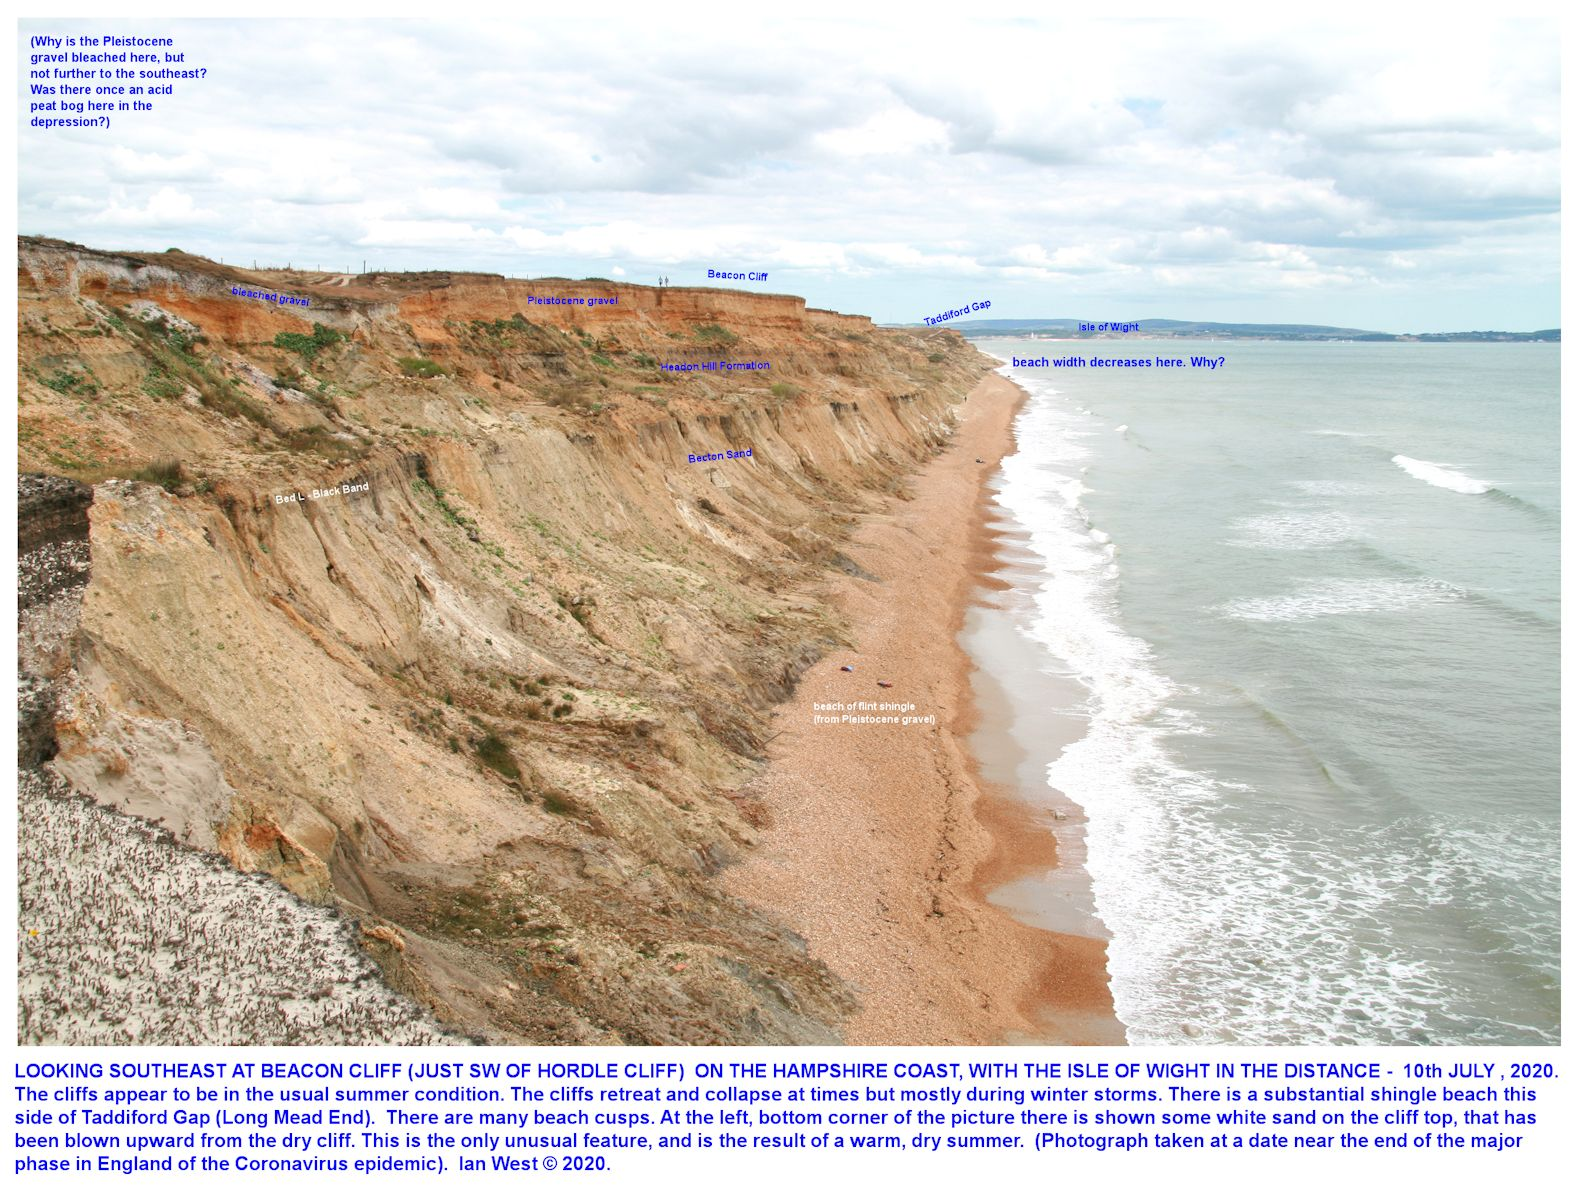 A general view of Beacon Cliff, looking southeast in the direction of Hordle Cliff, 10th July 2020, when weather conditions were warm and still, and there was no active erosion